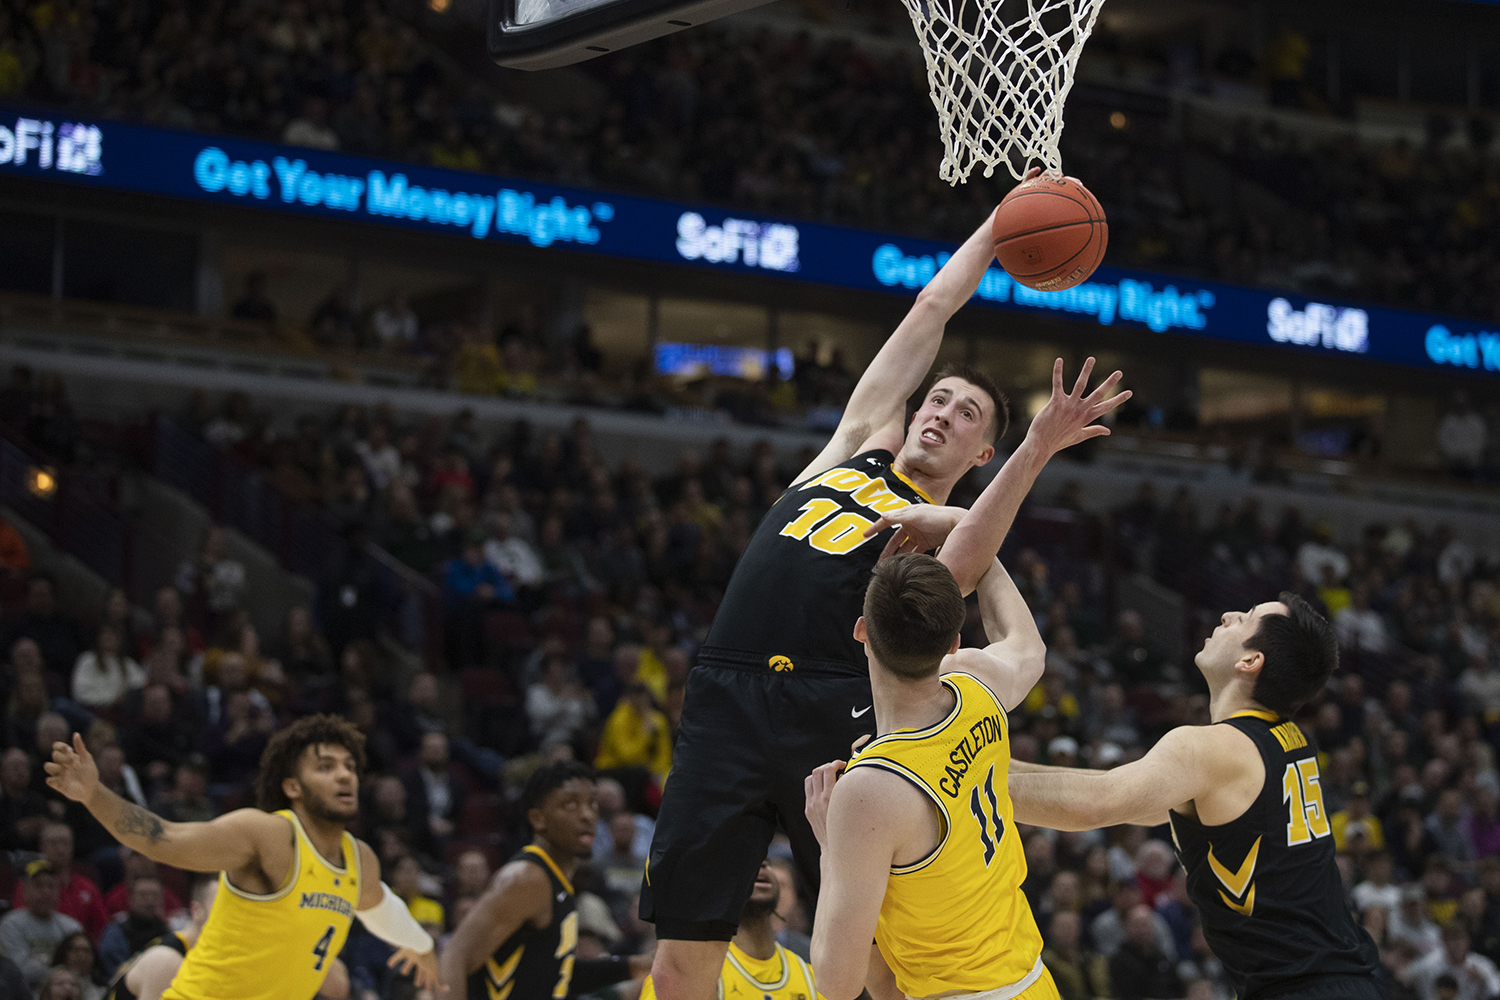 Iowa+guard+Joe+Wieskamp+pulls+down+a+rebound+during+the+Iowa%2FMichigan+Big+Ten+Tournament+men%27s+basketball+game+in+the+United+Center+in+Chicago+on+Friday%2C+March+15%2C+2019.+The+Wolverines+defeated+the+Hawkeyes%2C+74-53.+